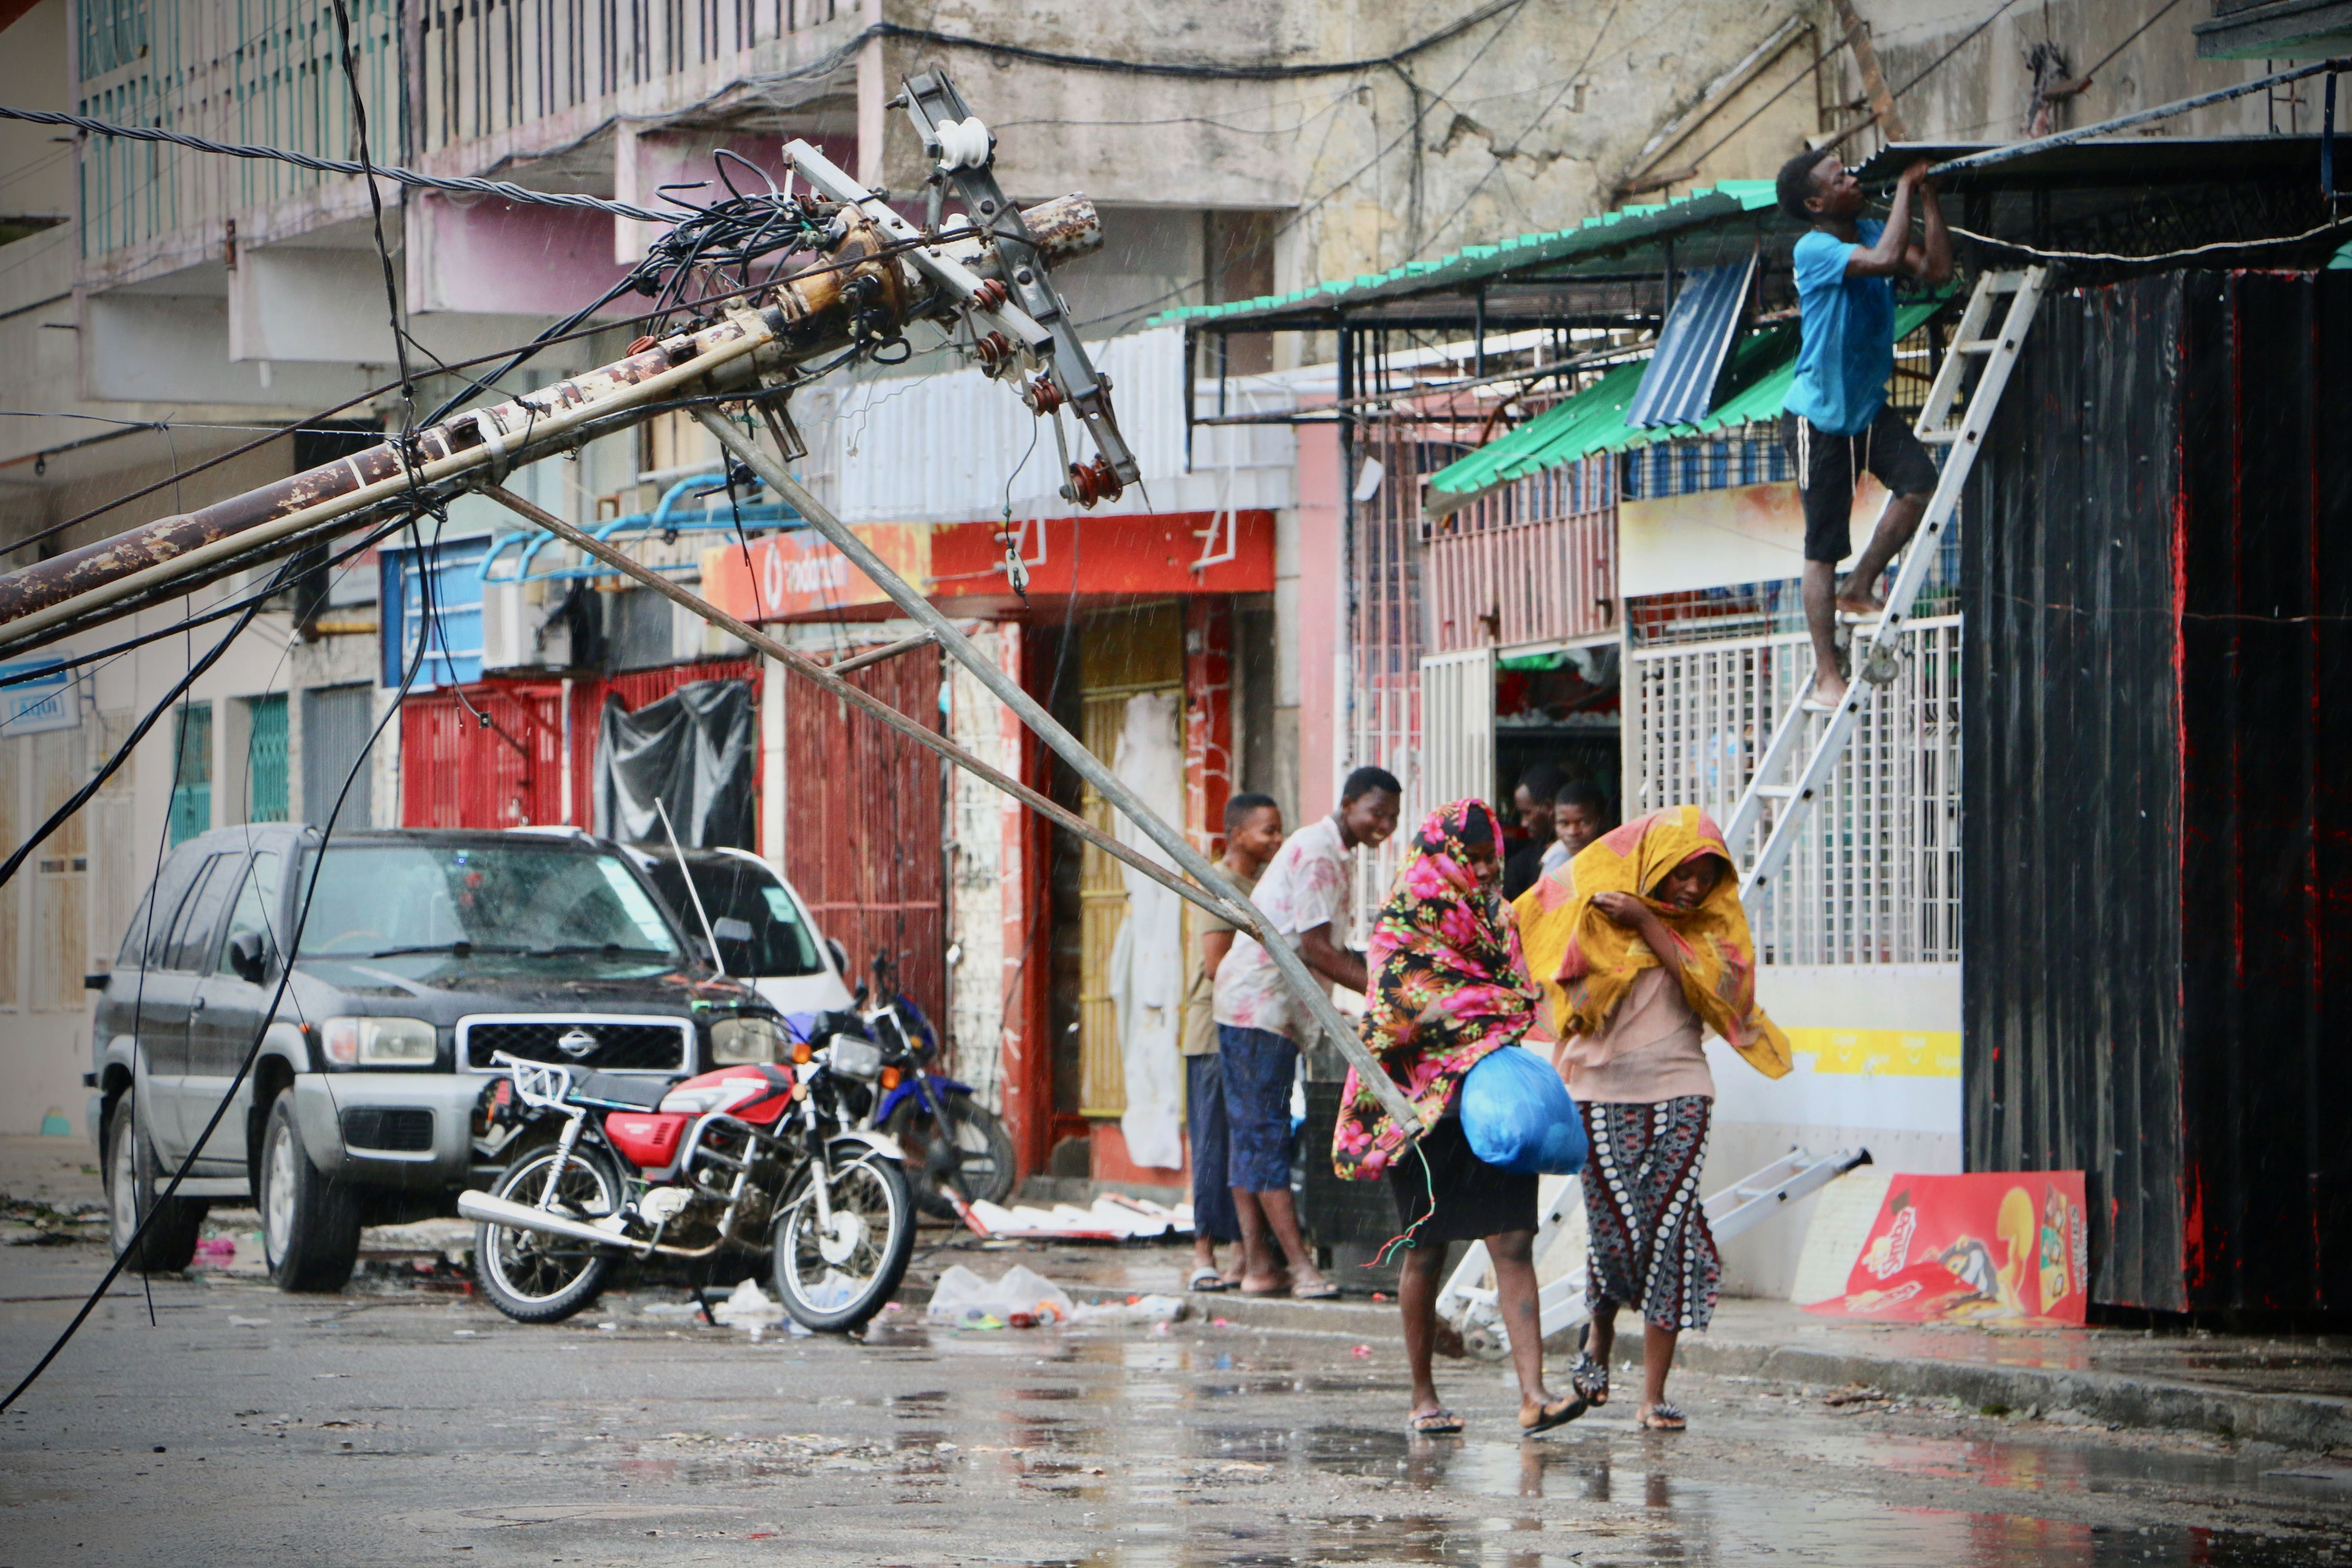 Residents are seen protecting themselves by the rain in the aftermath of the passage of the cyclone Idai in Beira, Mozambique, on March 17, 2019. (ADRIEN BARBIER/AFP/Getty Images)